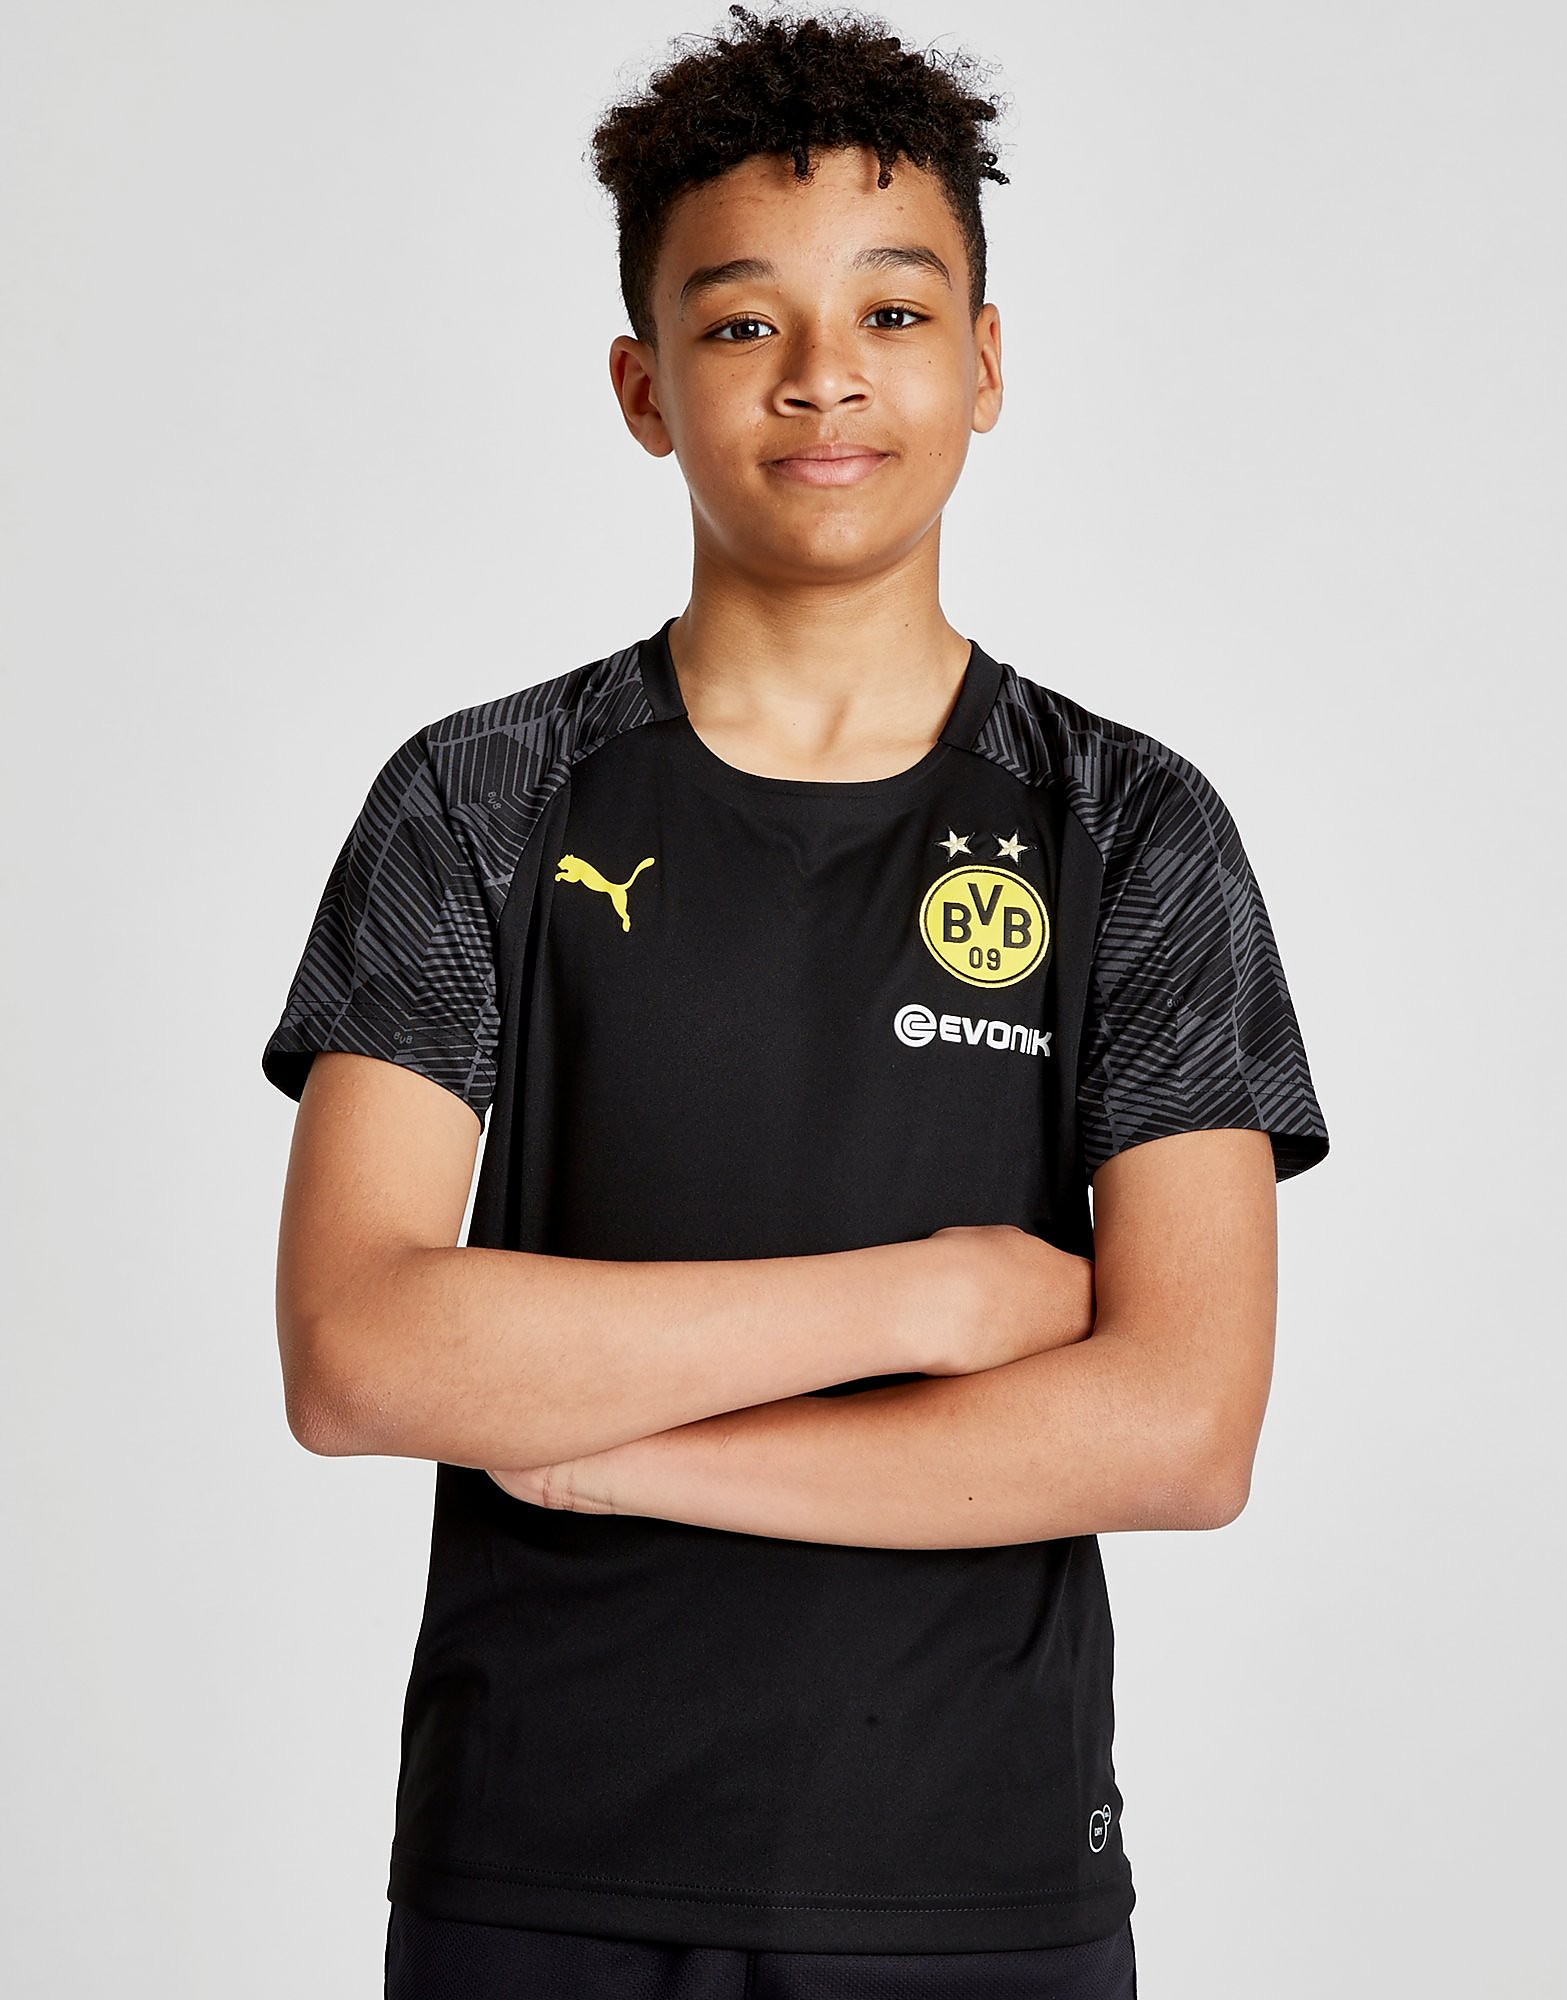 PUMA Borussia Dortmund 2018 Stadium Shirt Junior